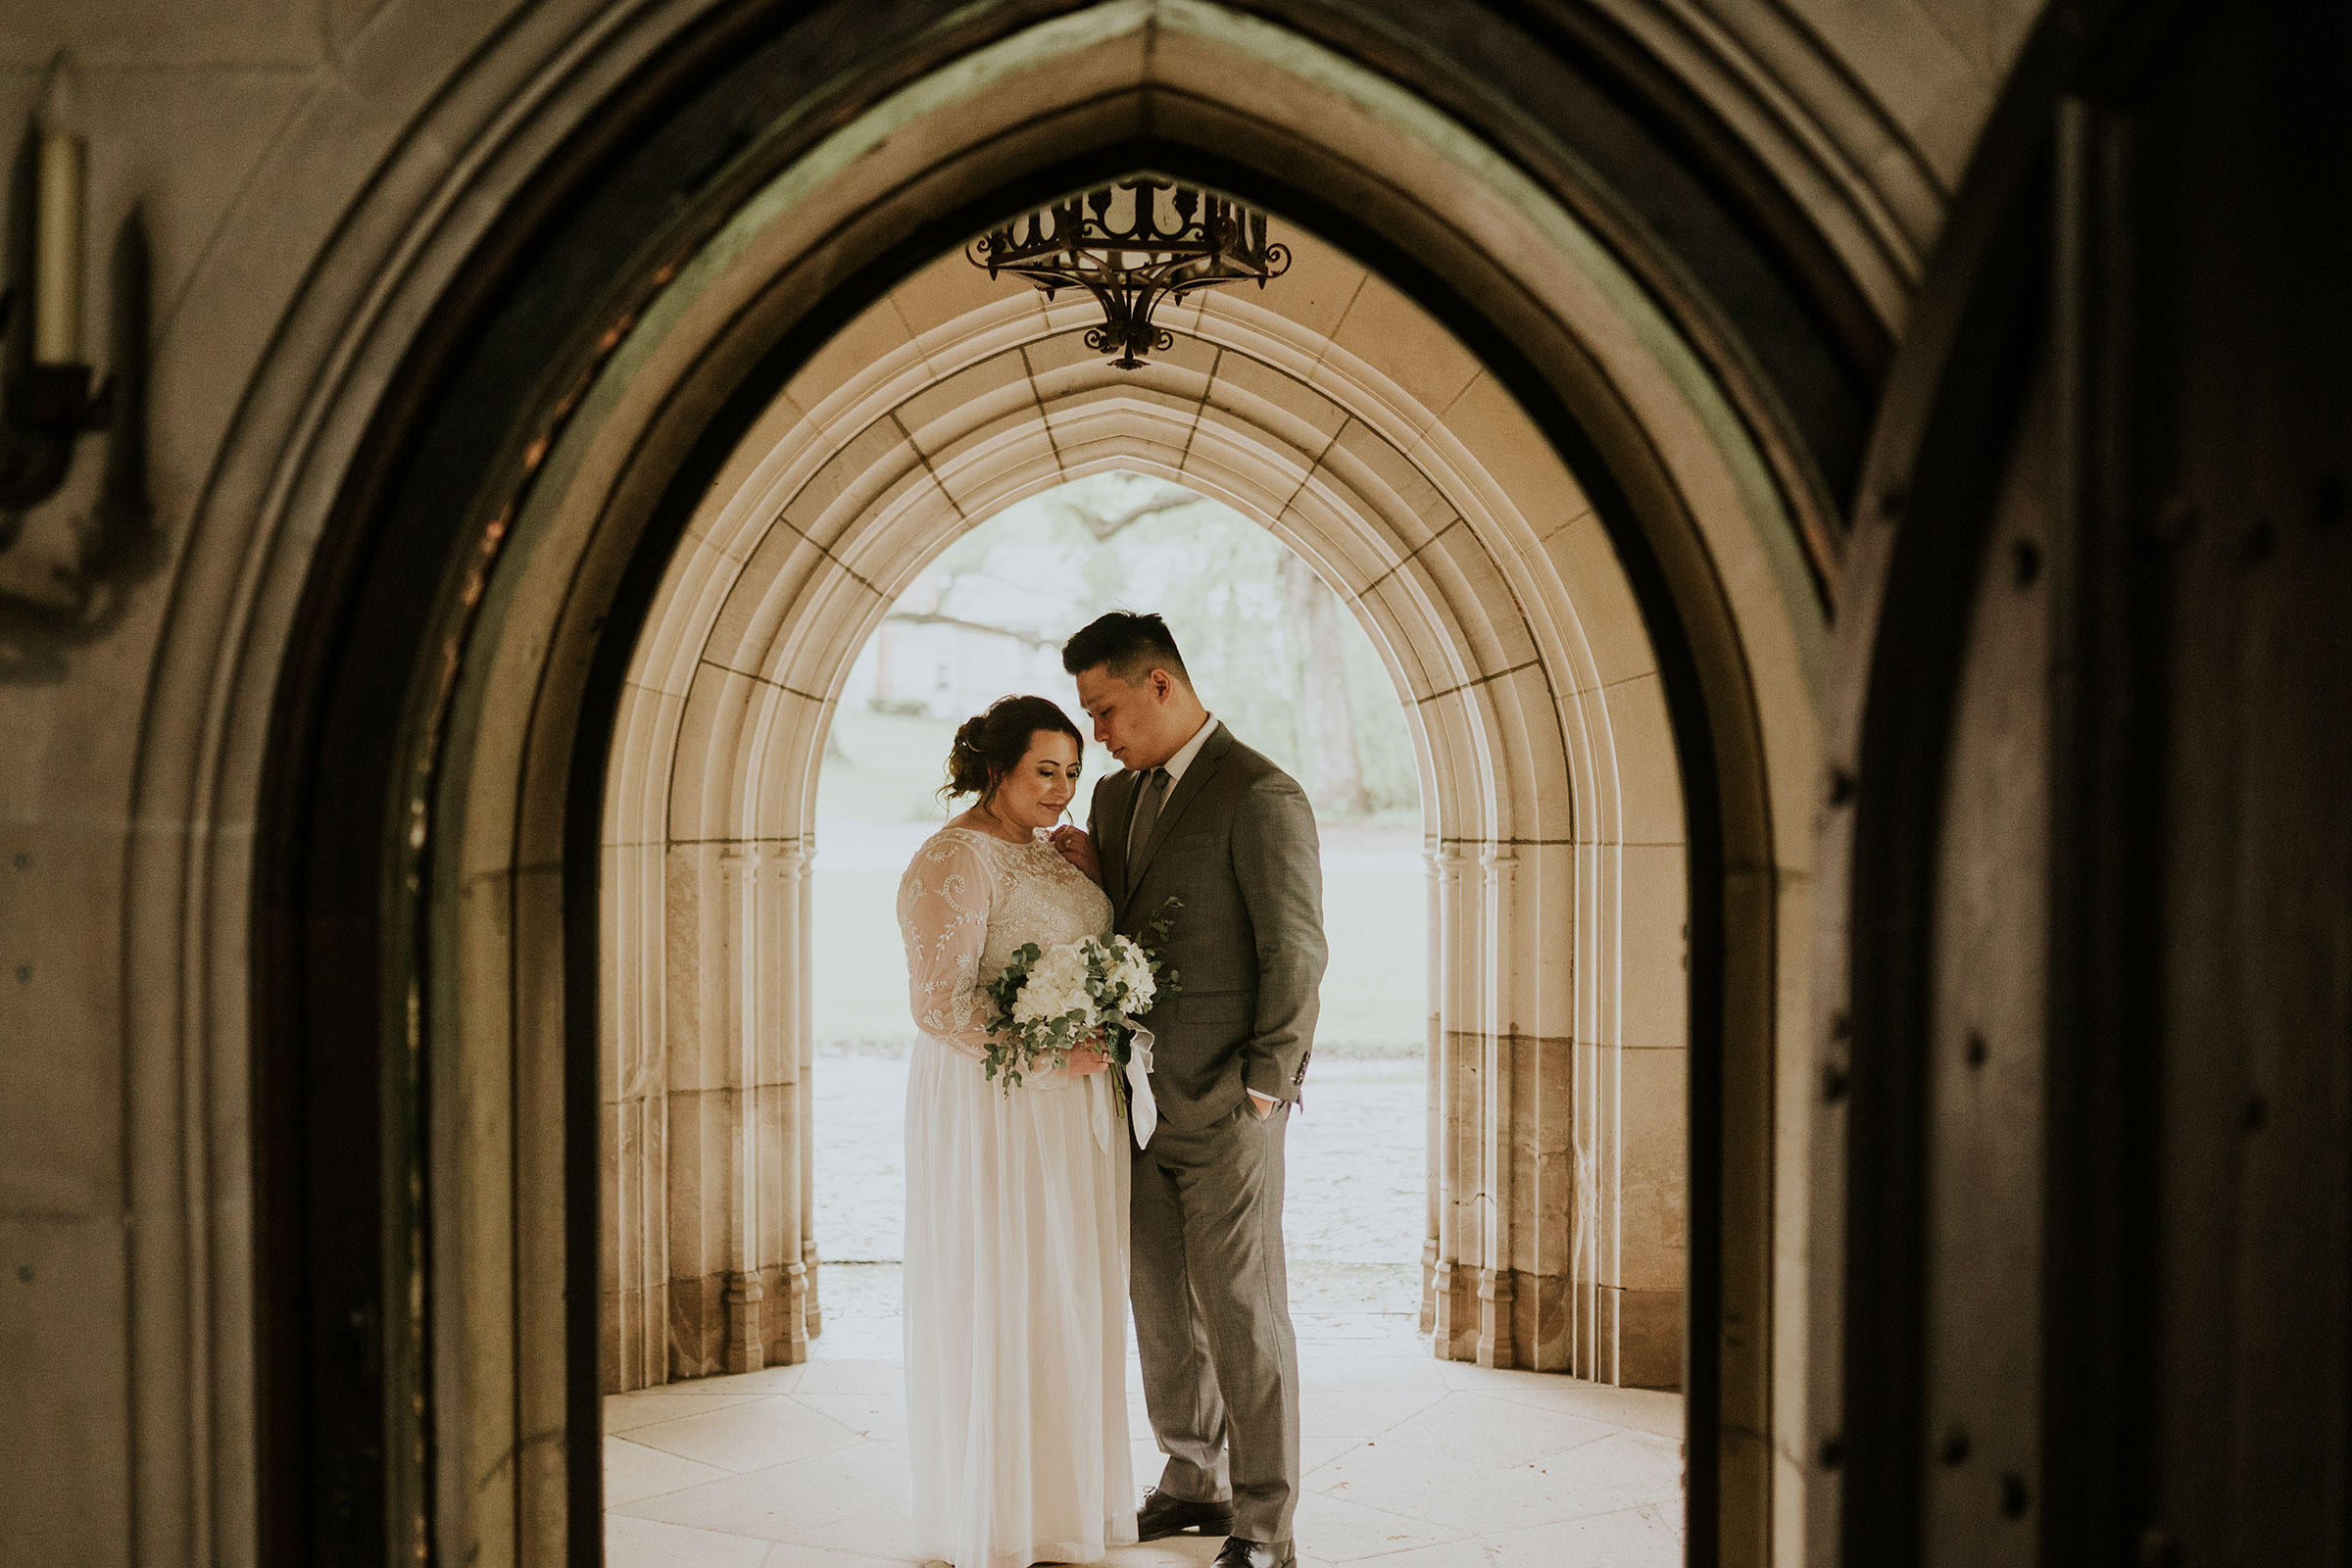 bride-groom-standing-under-arch-looking-at-each-other-wedding-salisbury-house-desmoines-iowa-raelyn-ramey-photography.jpg